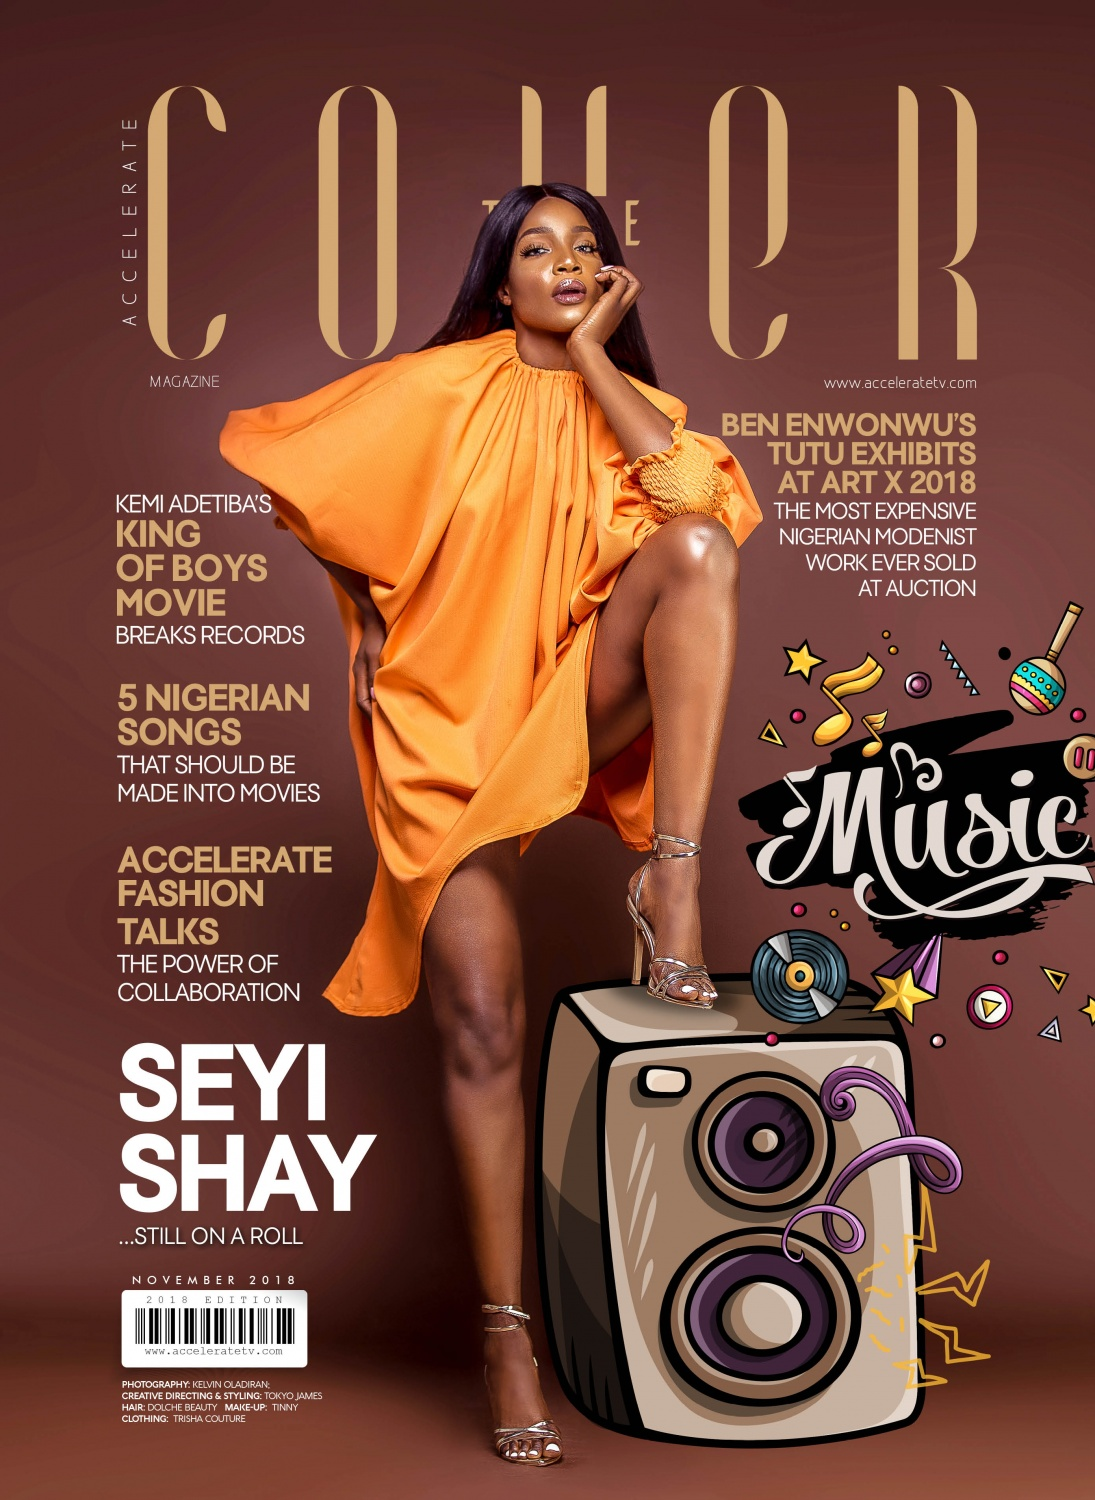 The Cover Nov' 2018 - Seyi Shay Is About To Take Over The